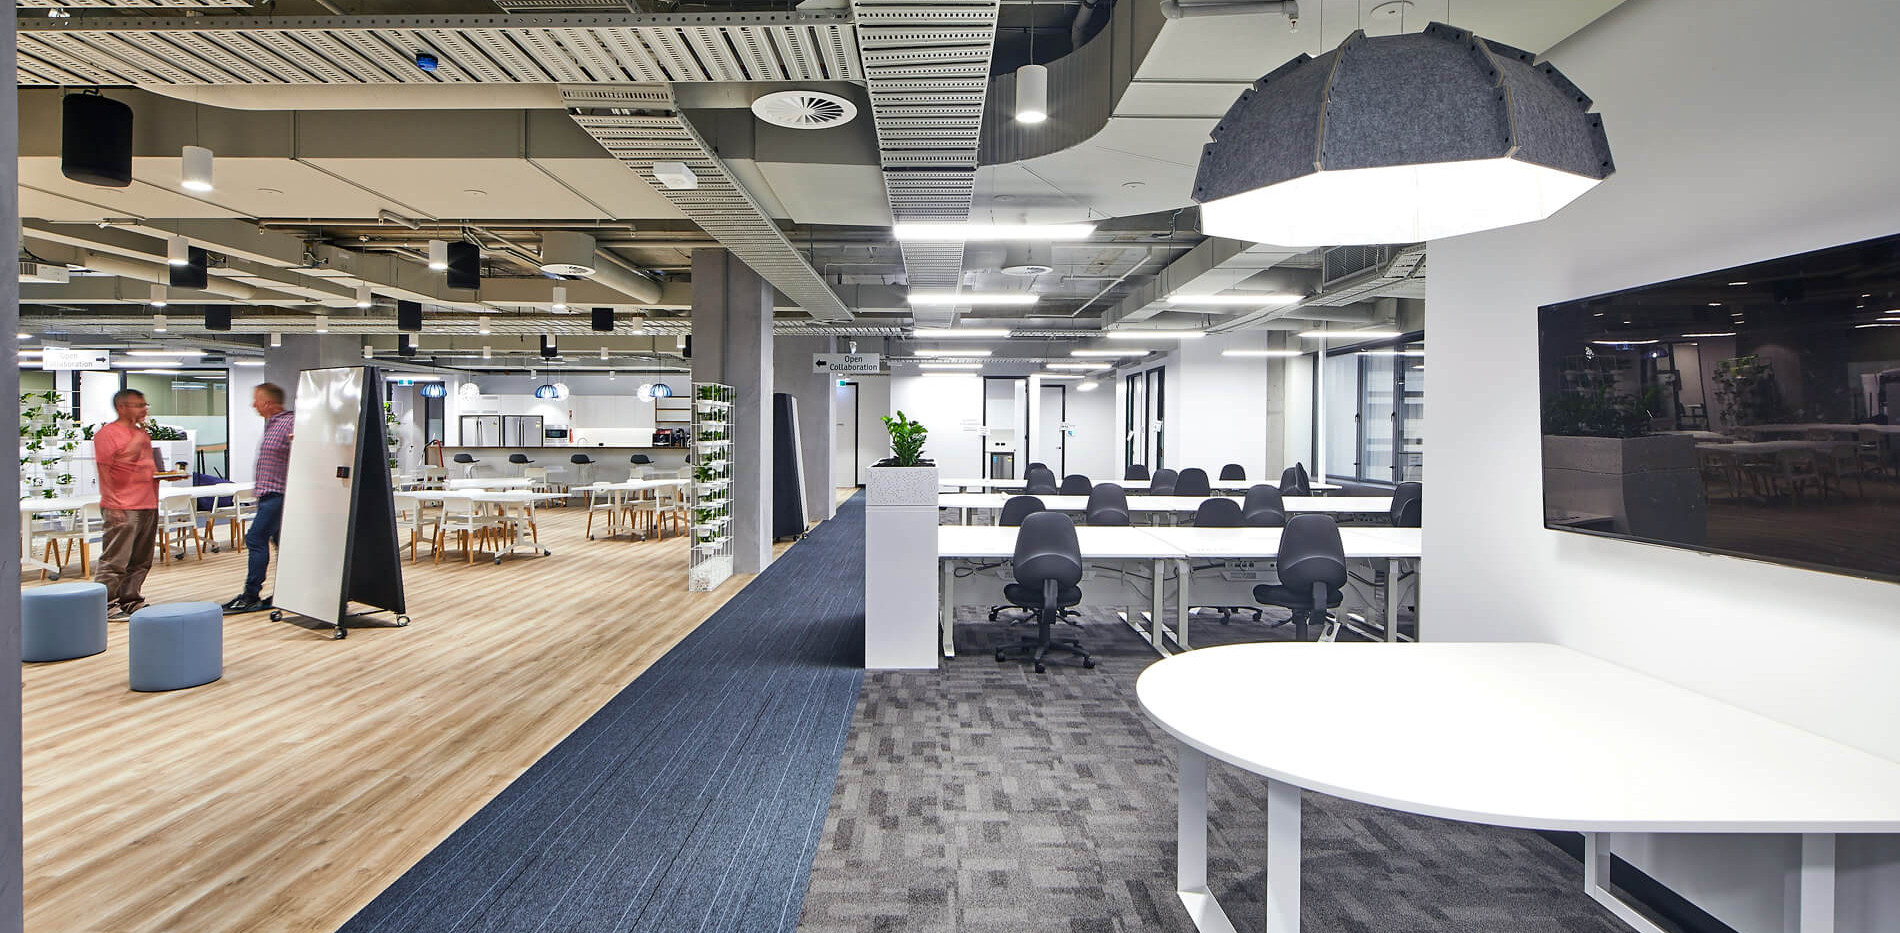 Renacent Healthdirect - corporate office interior design